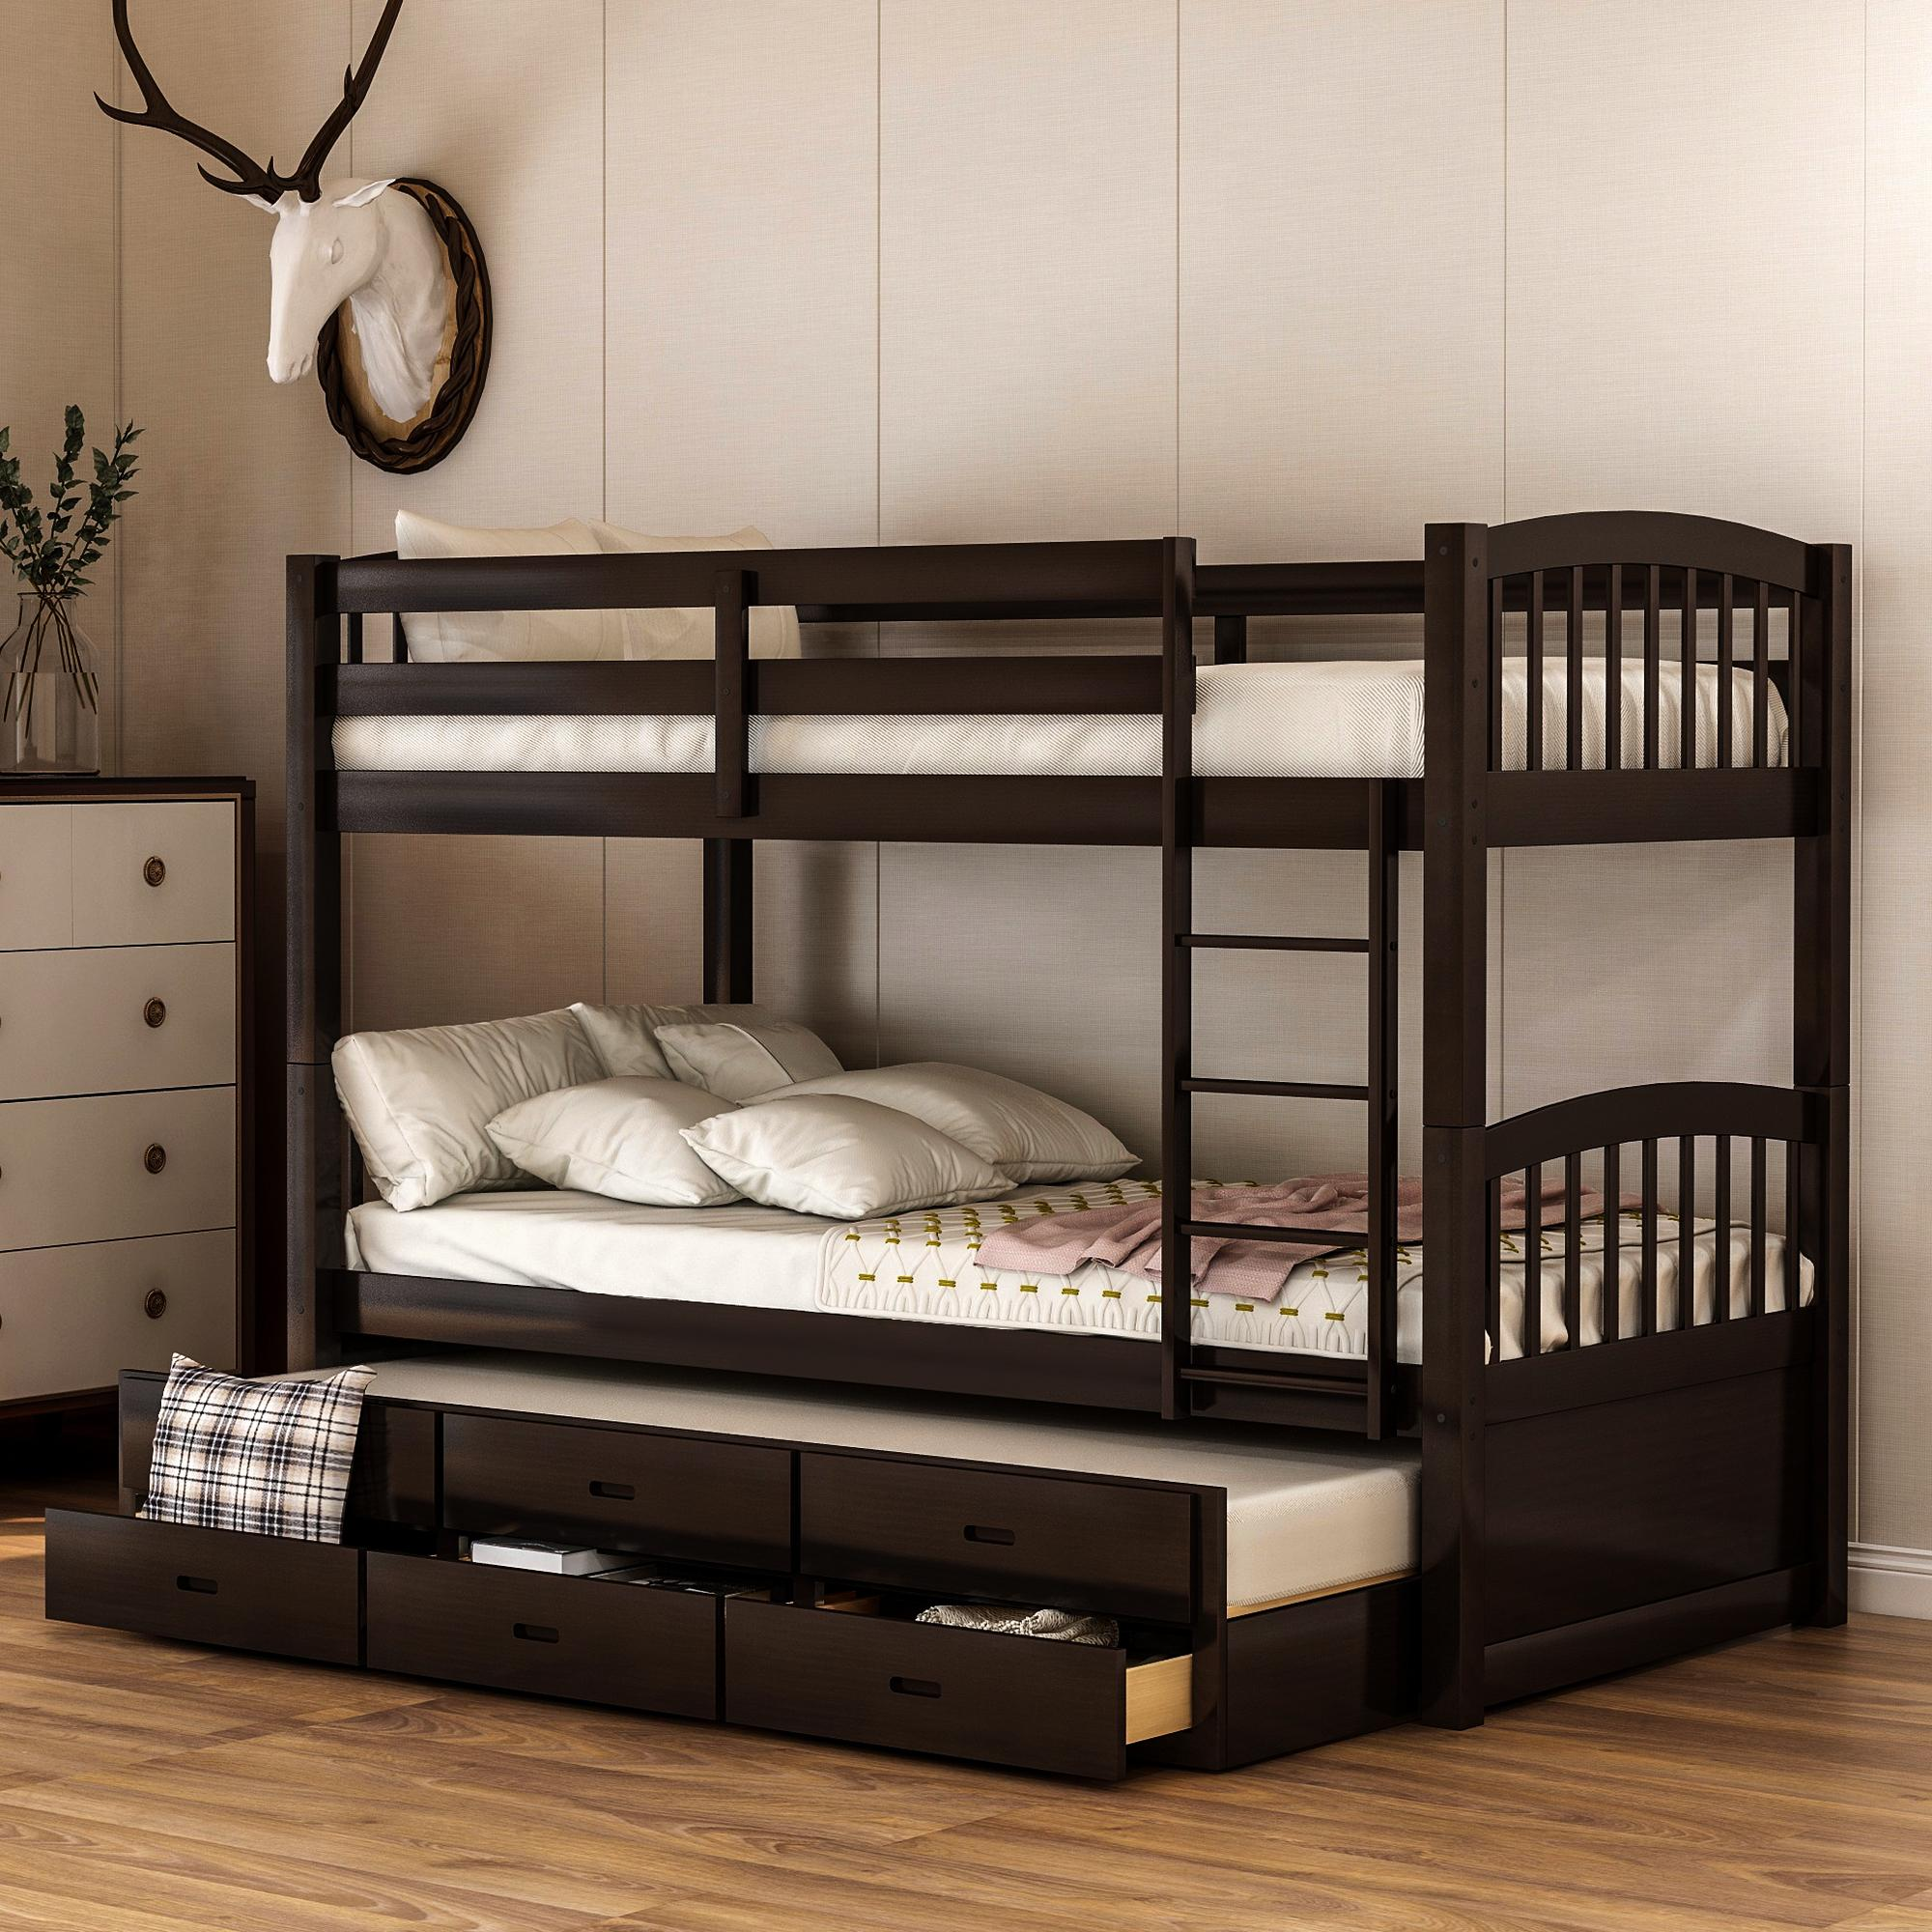 2020 Twin Over Twin Wood Bunk Bed Trundle Drawers Espresso White